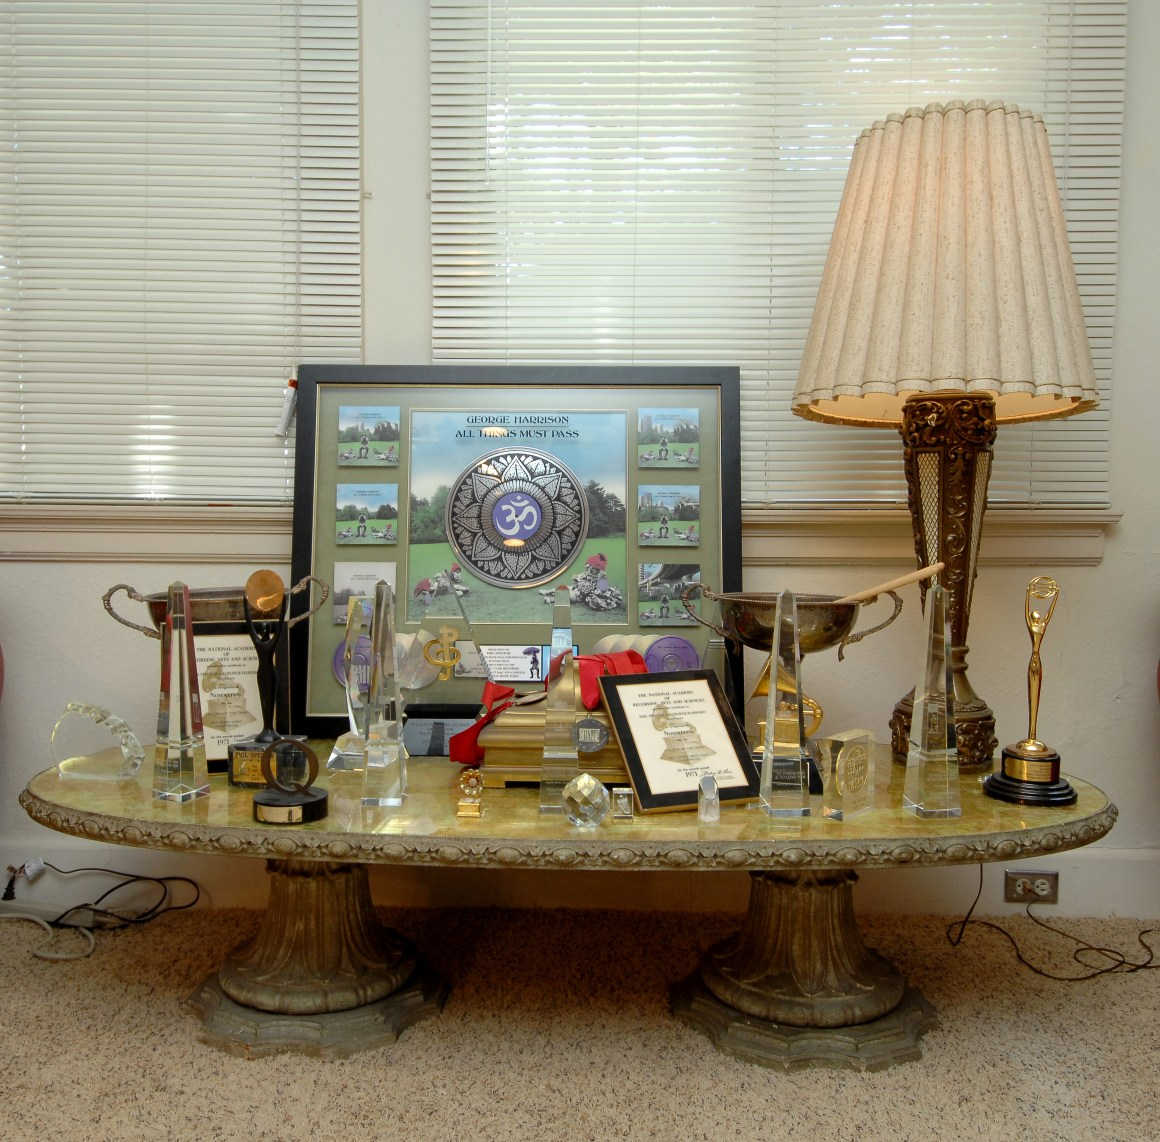 Pictured here are some of the many awards given to the Grammy-winning producer and songwriter during his career